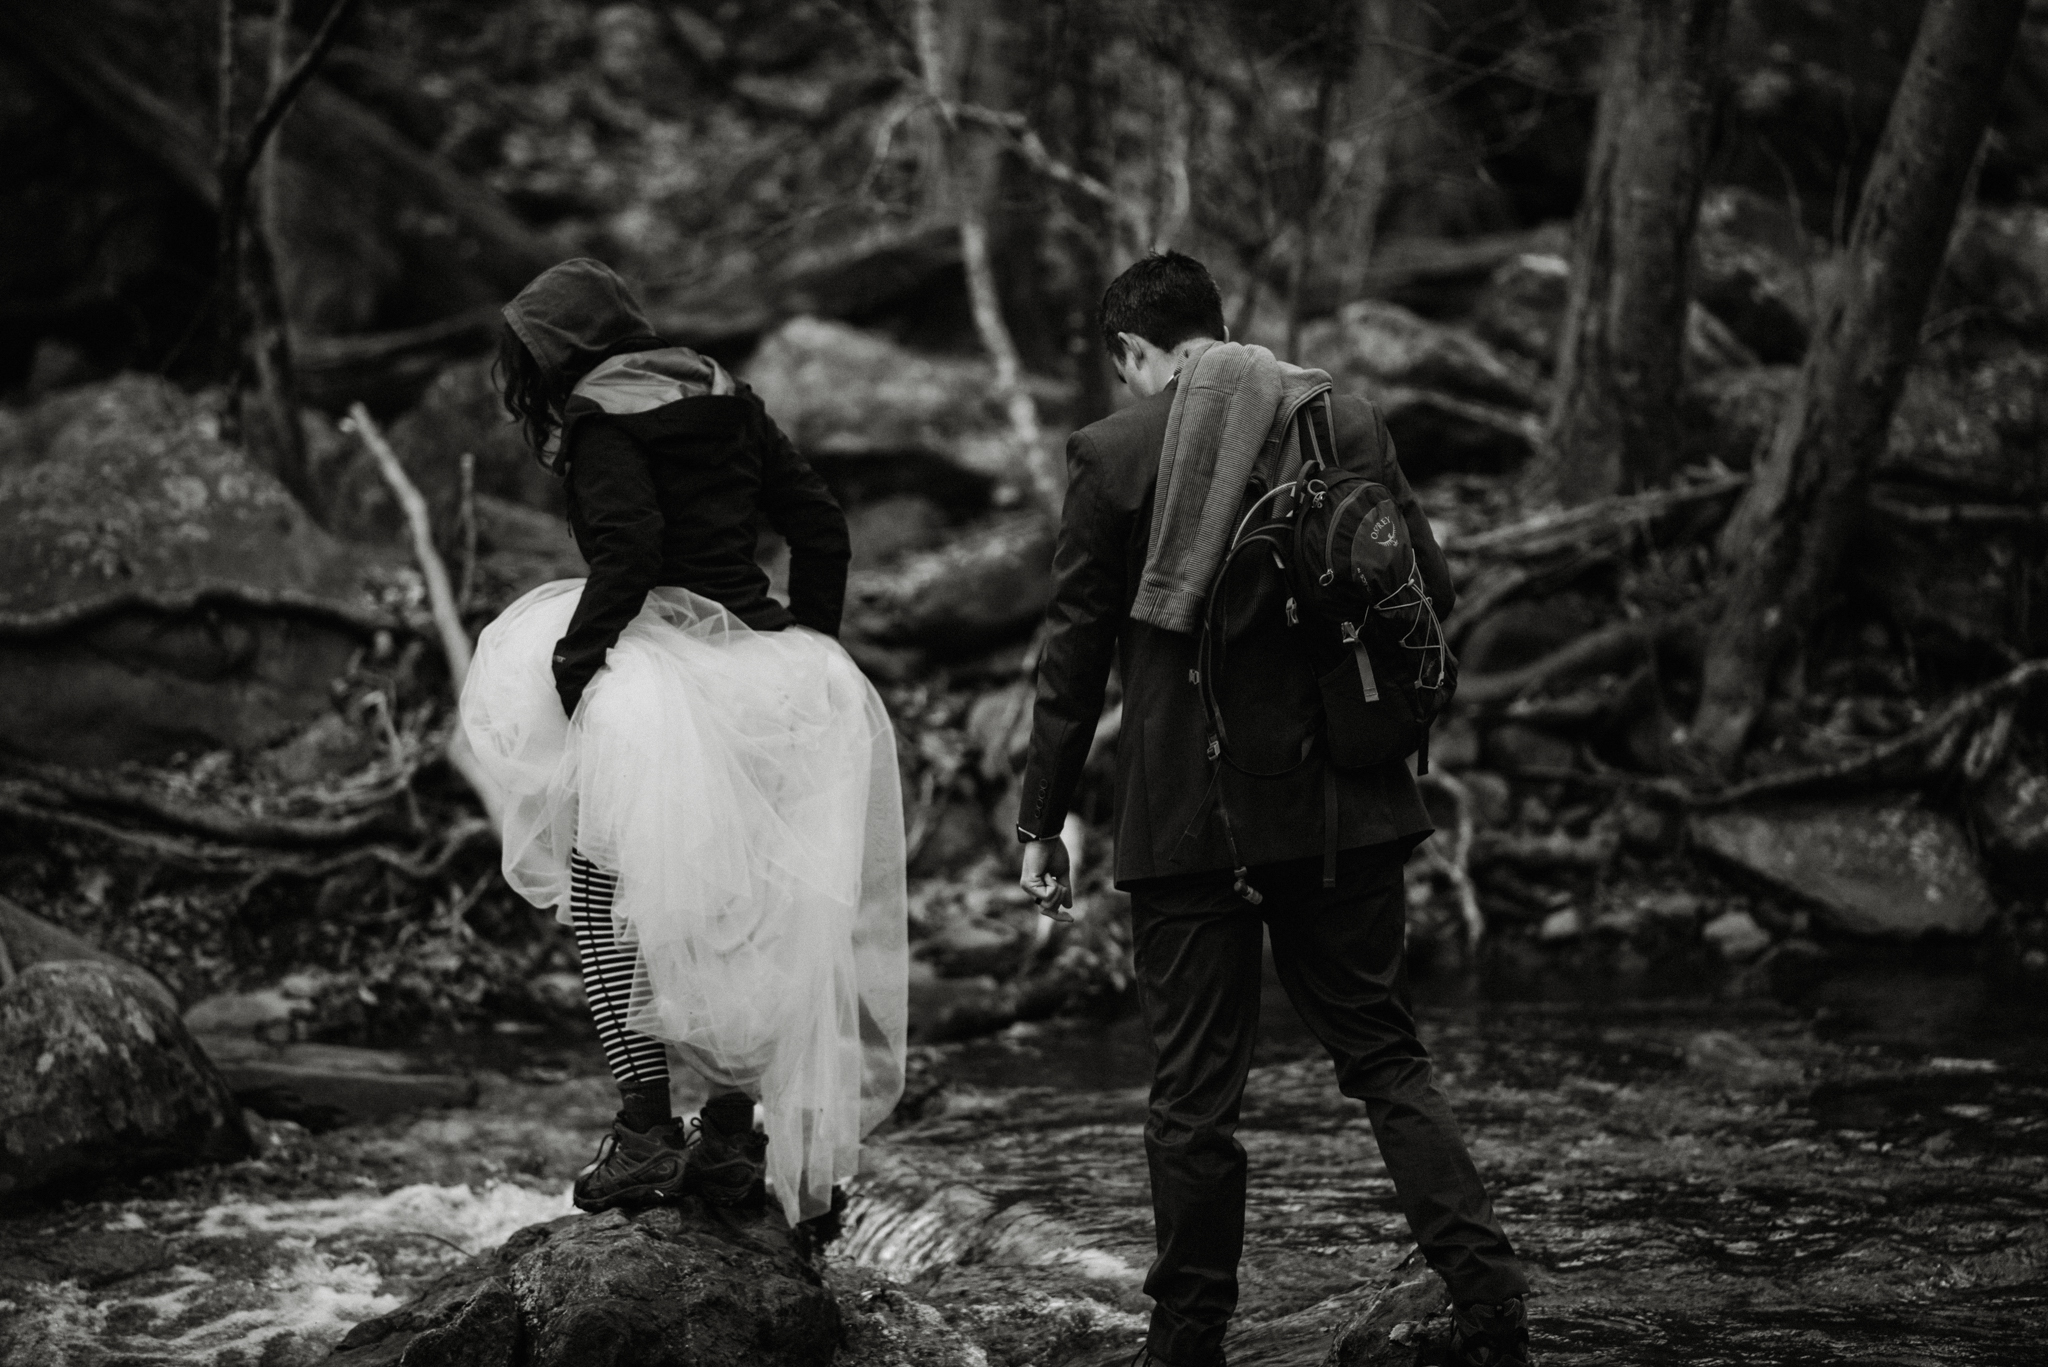 Stephanie and Steve - Shenandoah National Park Elopement - Sunrise Hiking Elopement - Adventurous Elopement - Virginia Elopement Photographer - Shenandoah national Park Wedding Photographer - White Sails Creative_45.jpg